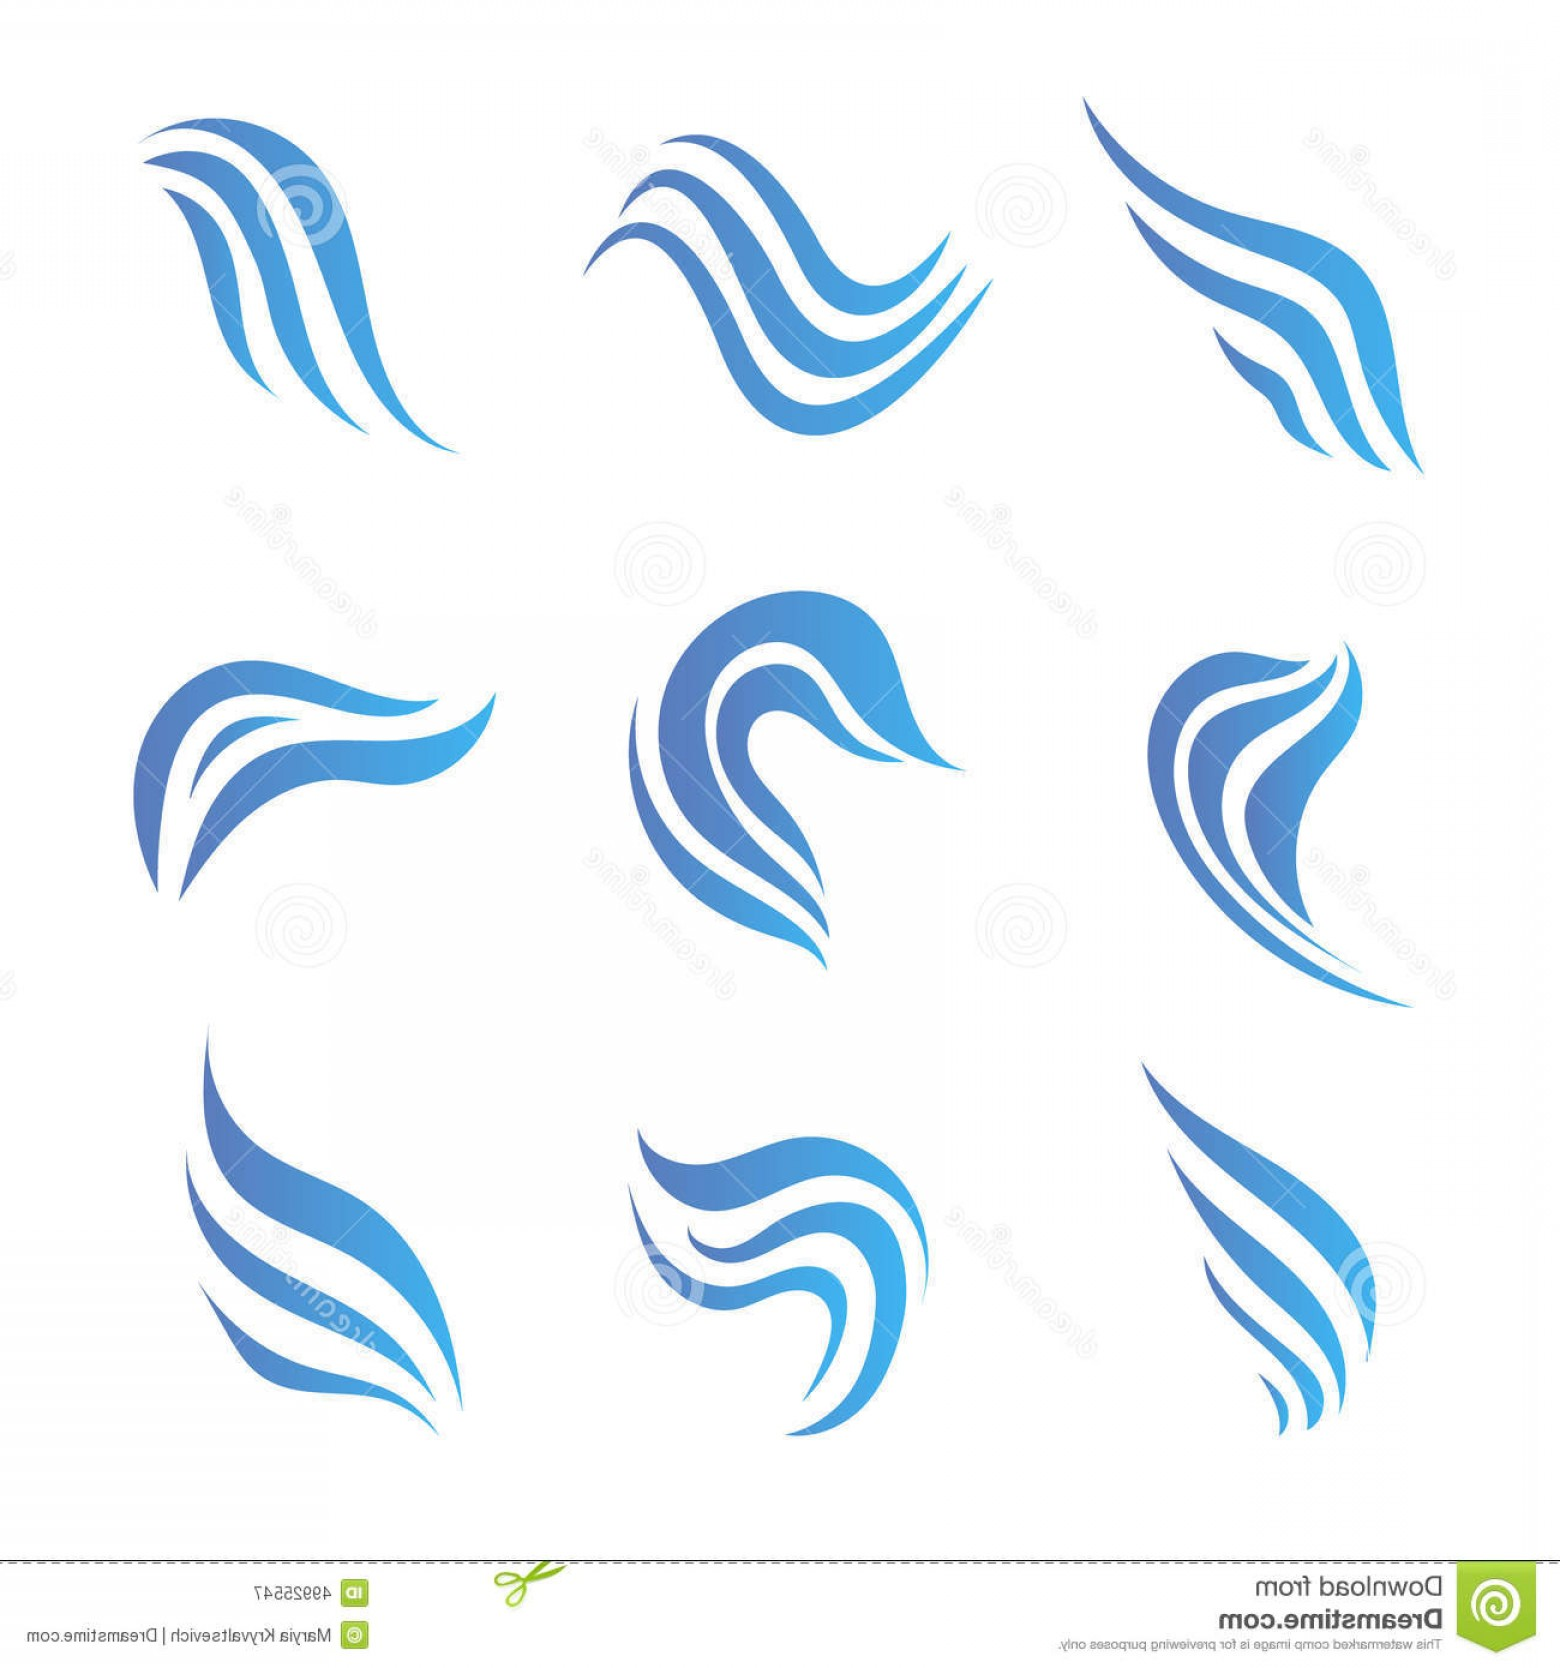 Water Flow Vector: Stock Illustration Vector Set Flow Water Blue Icons Logos Isolated Image